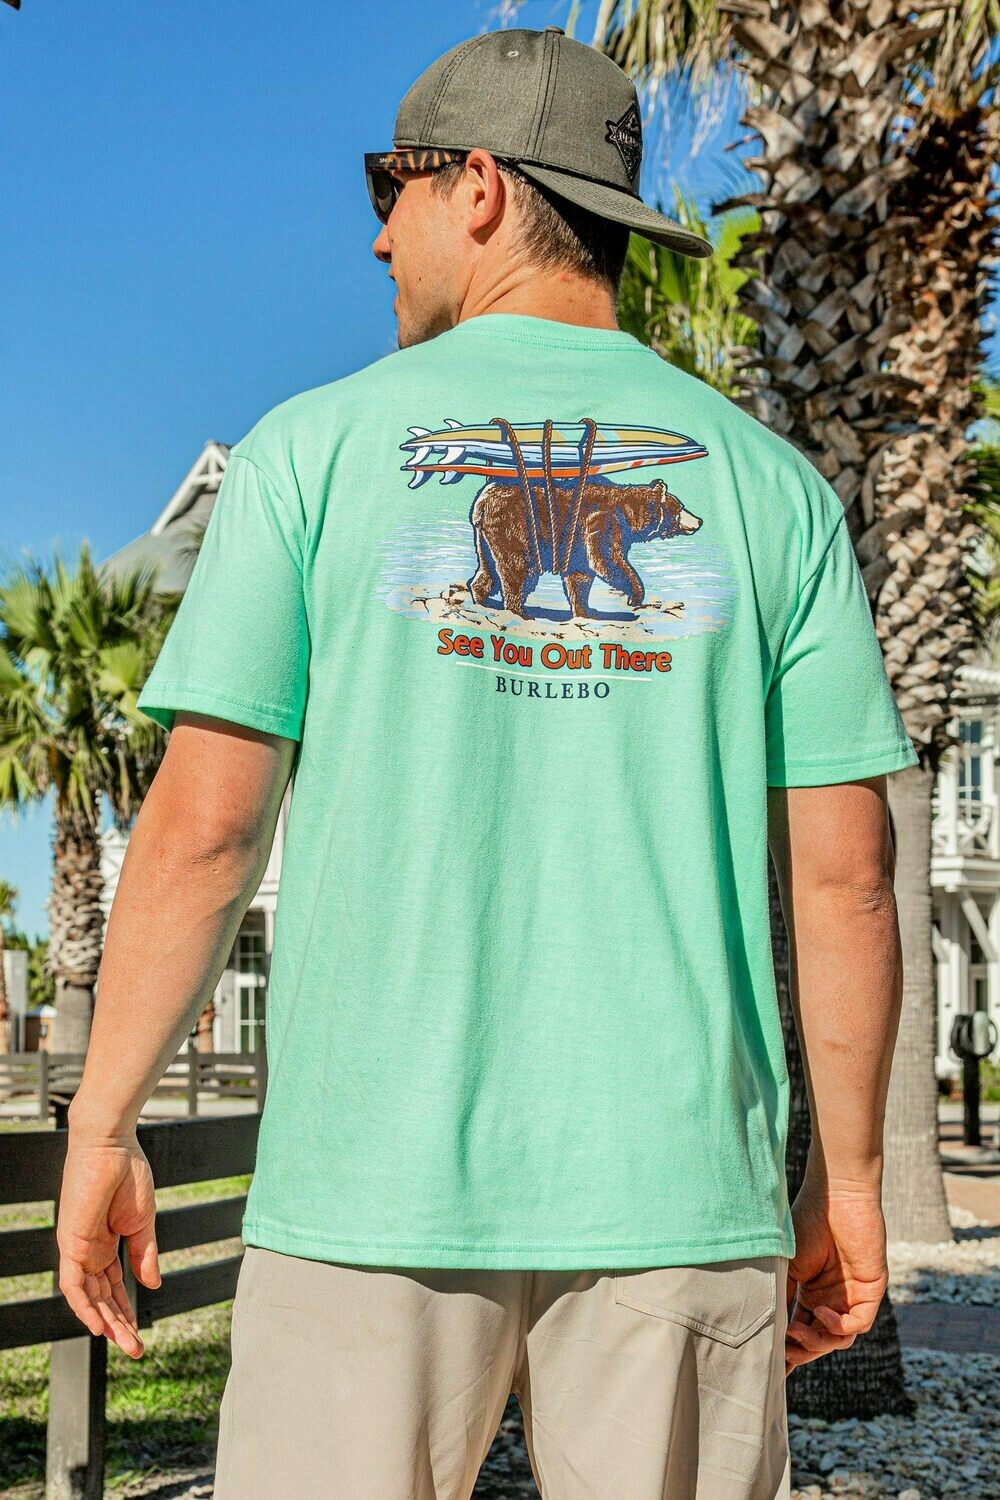 Burlebo Men's See You Out There Tee